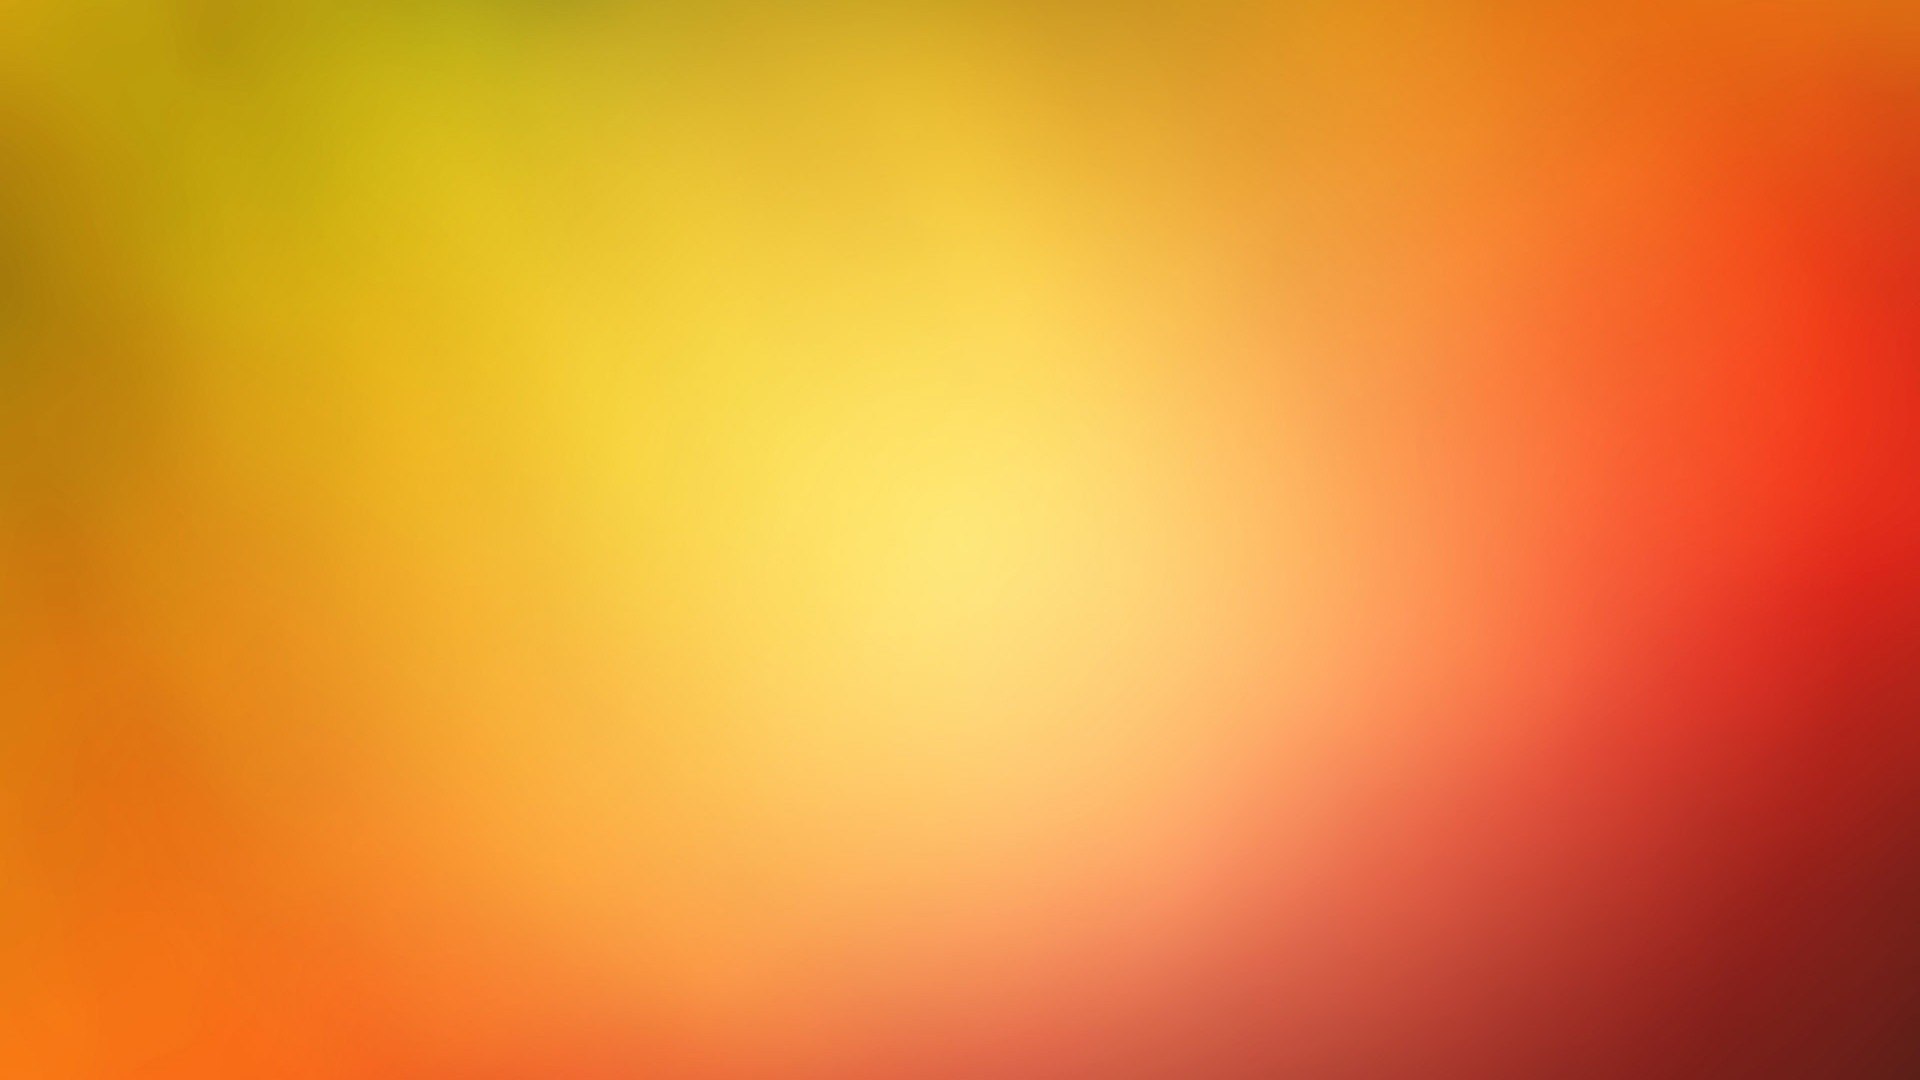 Neon Orange Backgrounds 1920x1080